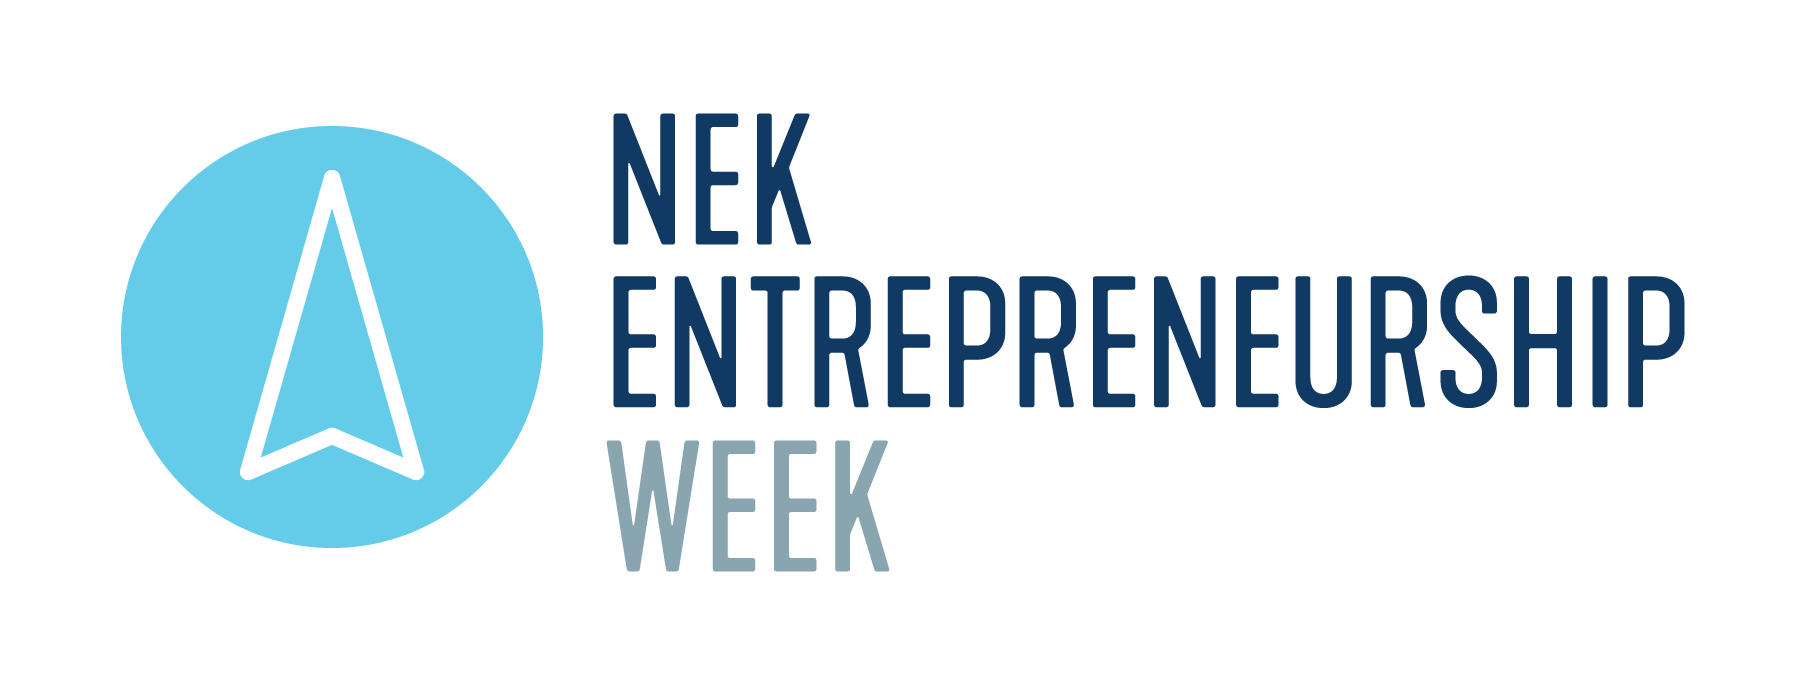 NEK Entrepreneurship Week - Presented by Do North Coworking & North Country Federal Credit Union